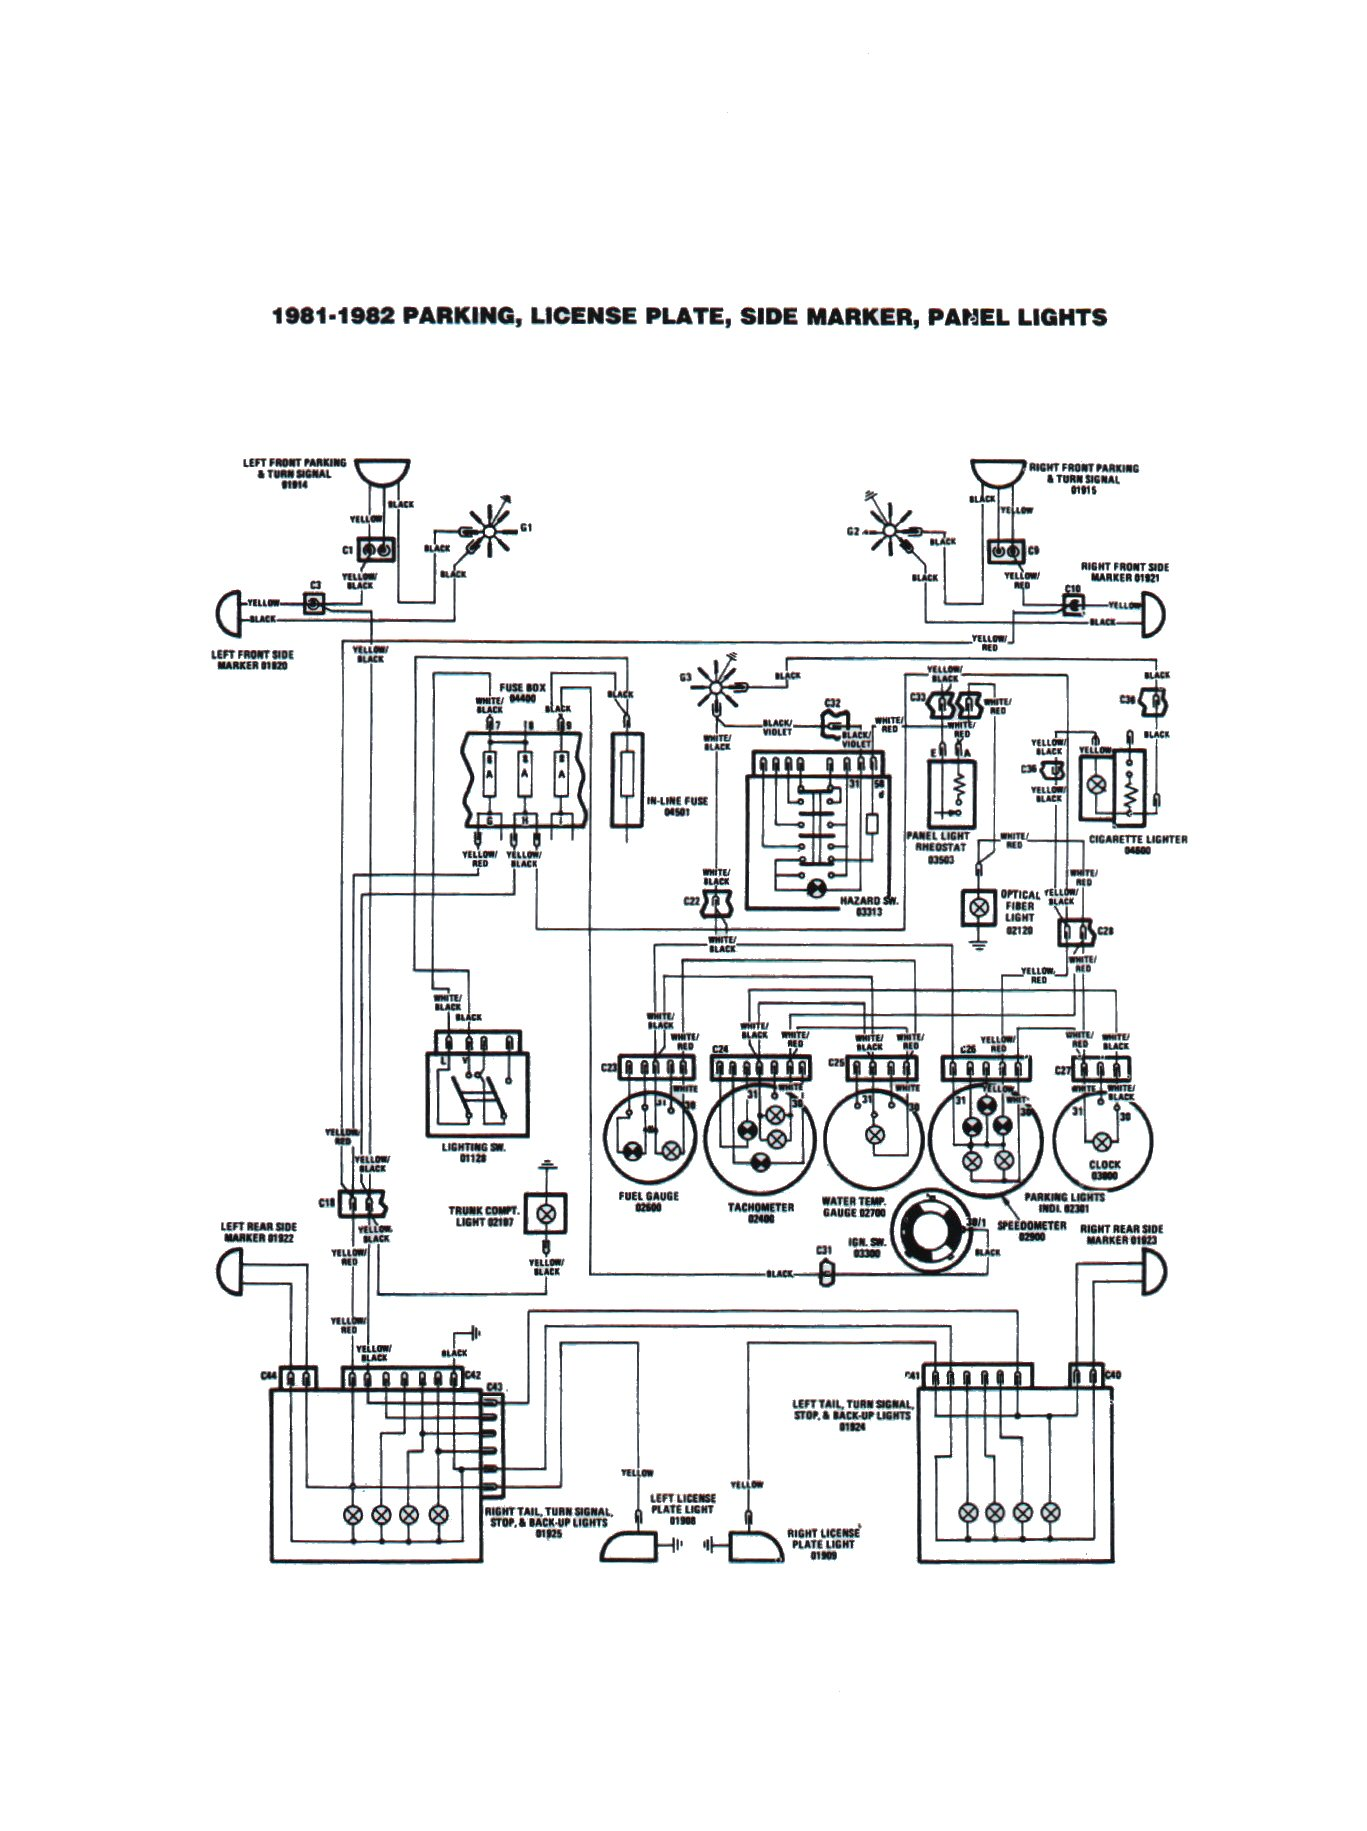 44 fiat 124 spider la bella macchina on repeated request 1977 fiat 124 spider fuse box diagram at gsmx.co